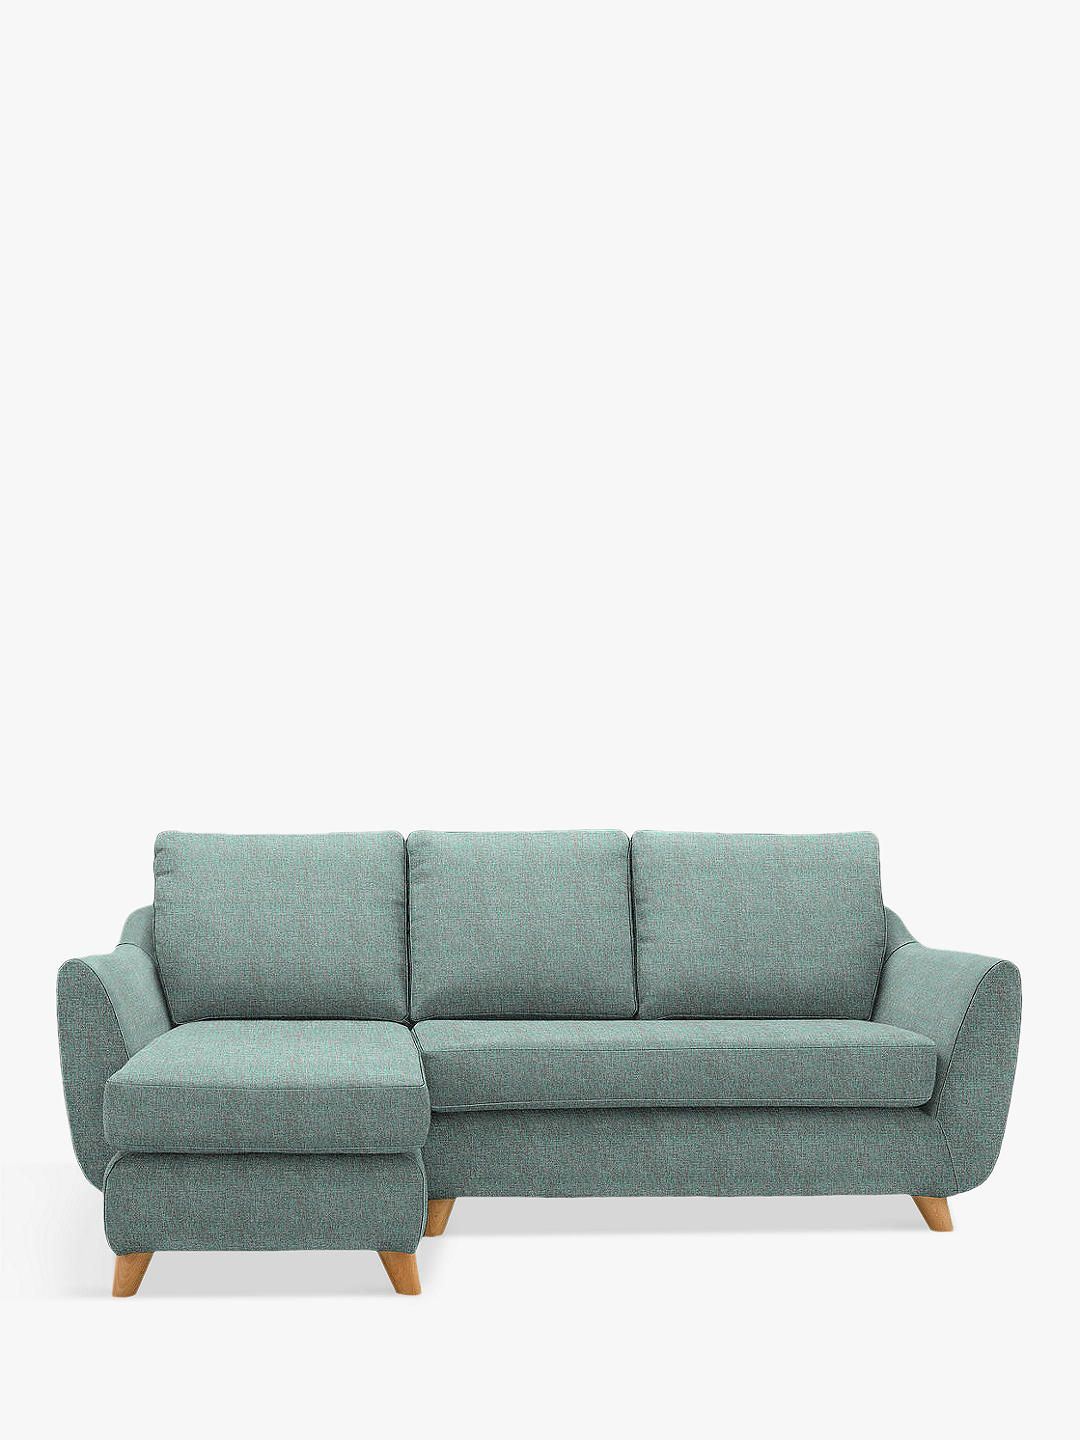 G Plan Vintage The Sixty Seven LHF Chaise End Sofa, Marl Sky ...